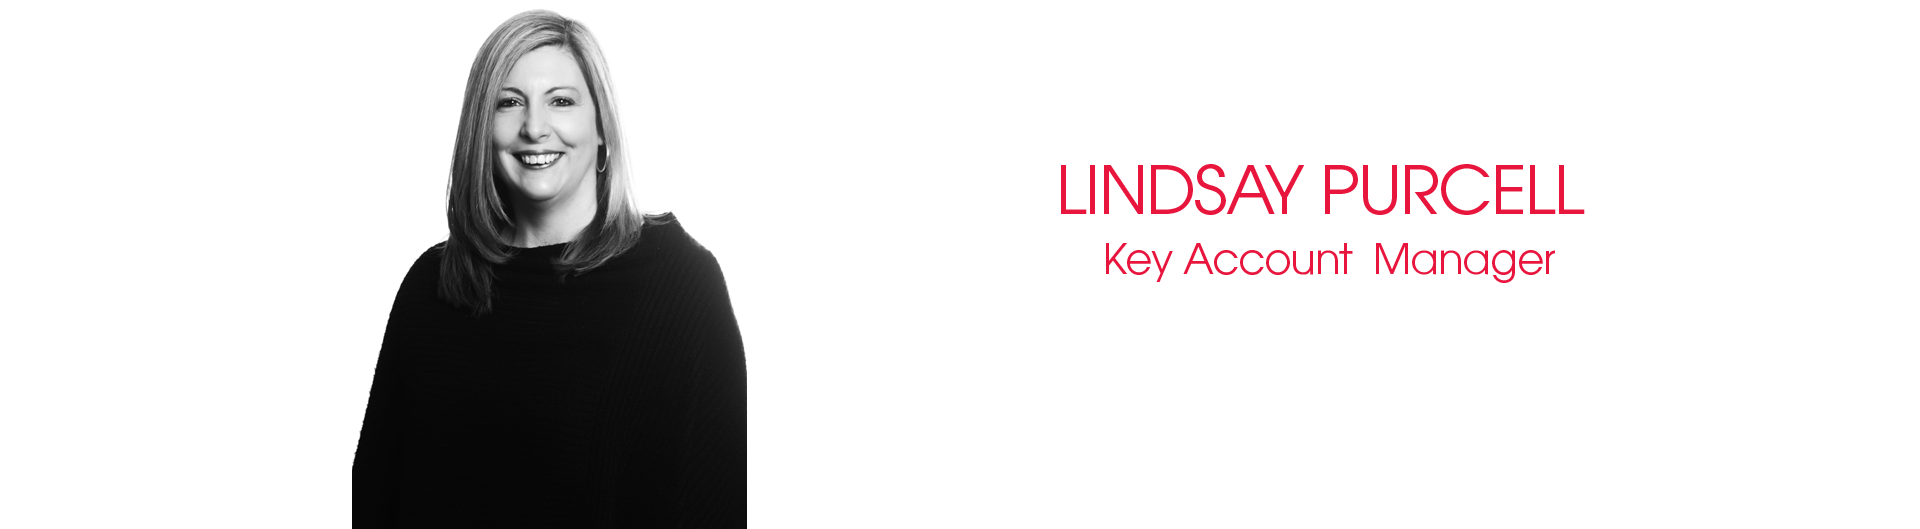 Lindsay Purcell Key Account Manager